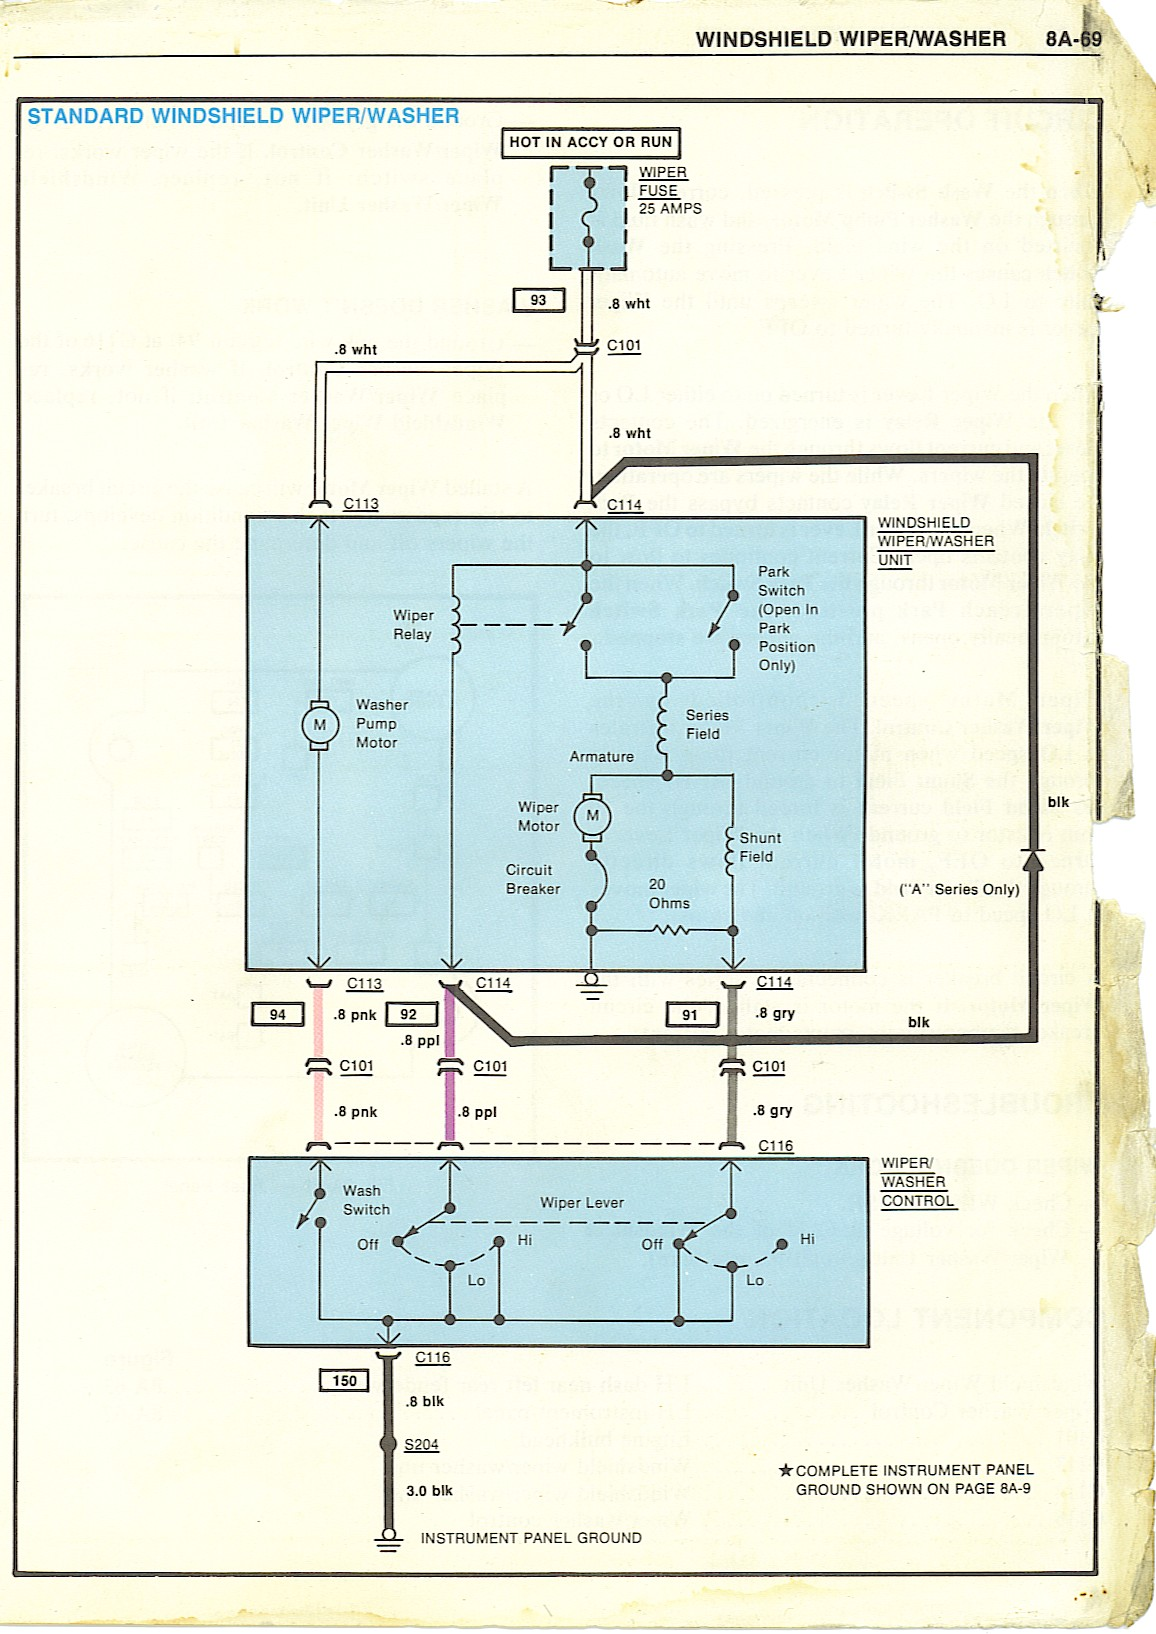 hight resolution of 1971 chevy wiper wiring diagram simple wiring schema 1977 oldsmobile 442 1970 oldsmobile 442 wiring diagram